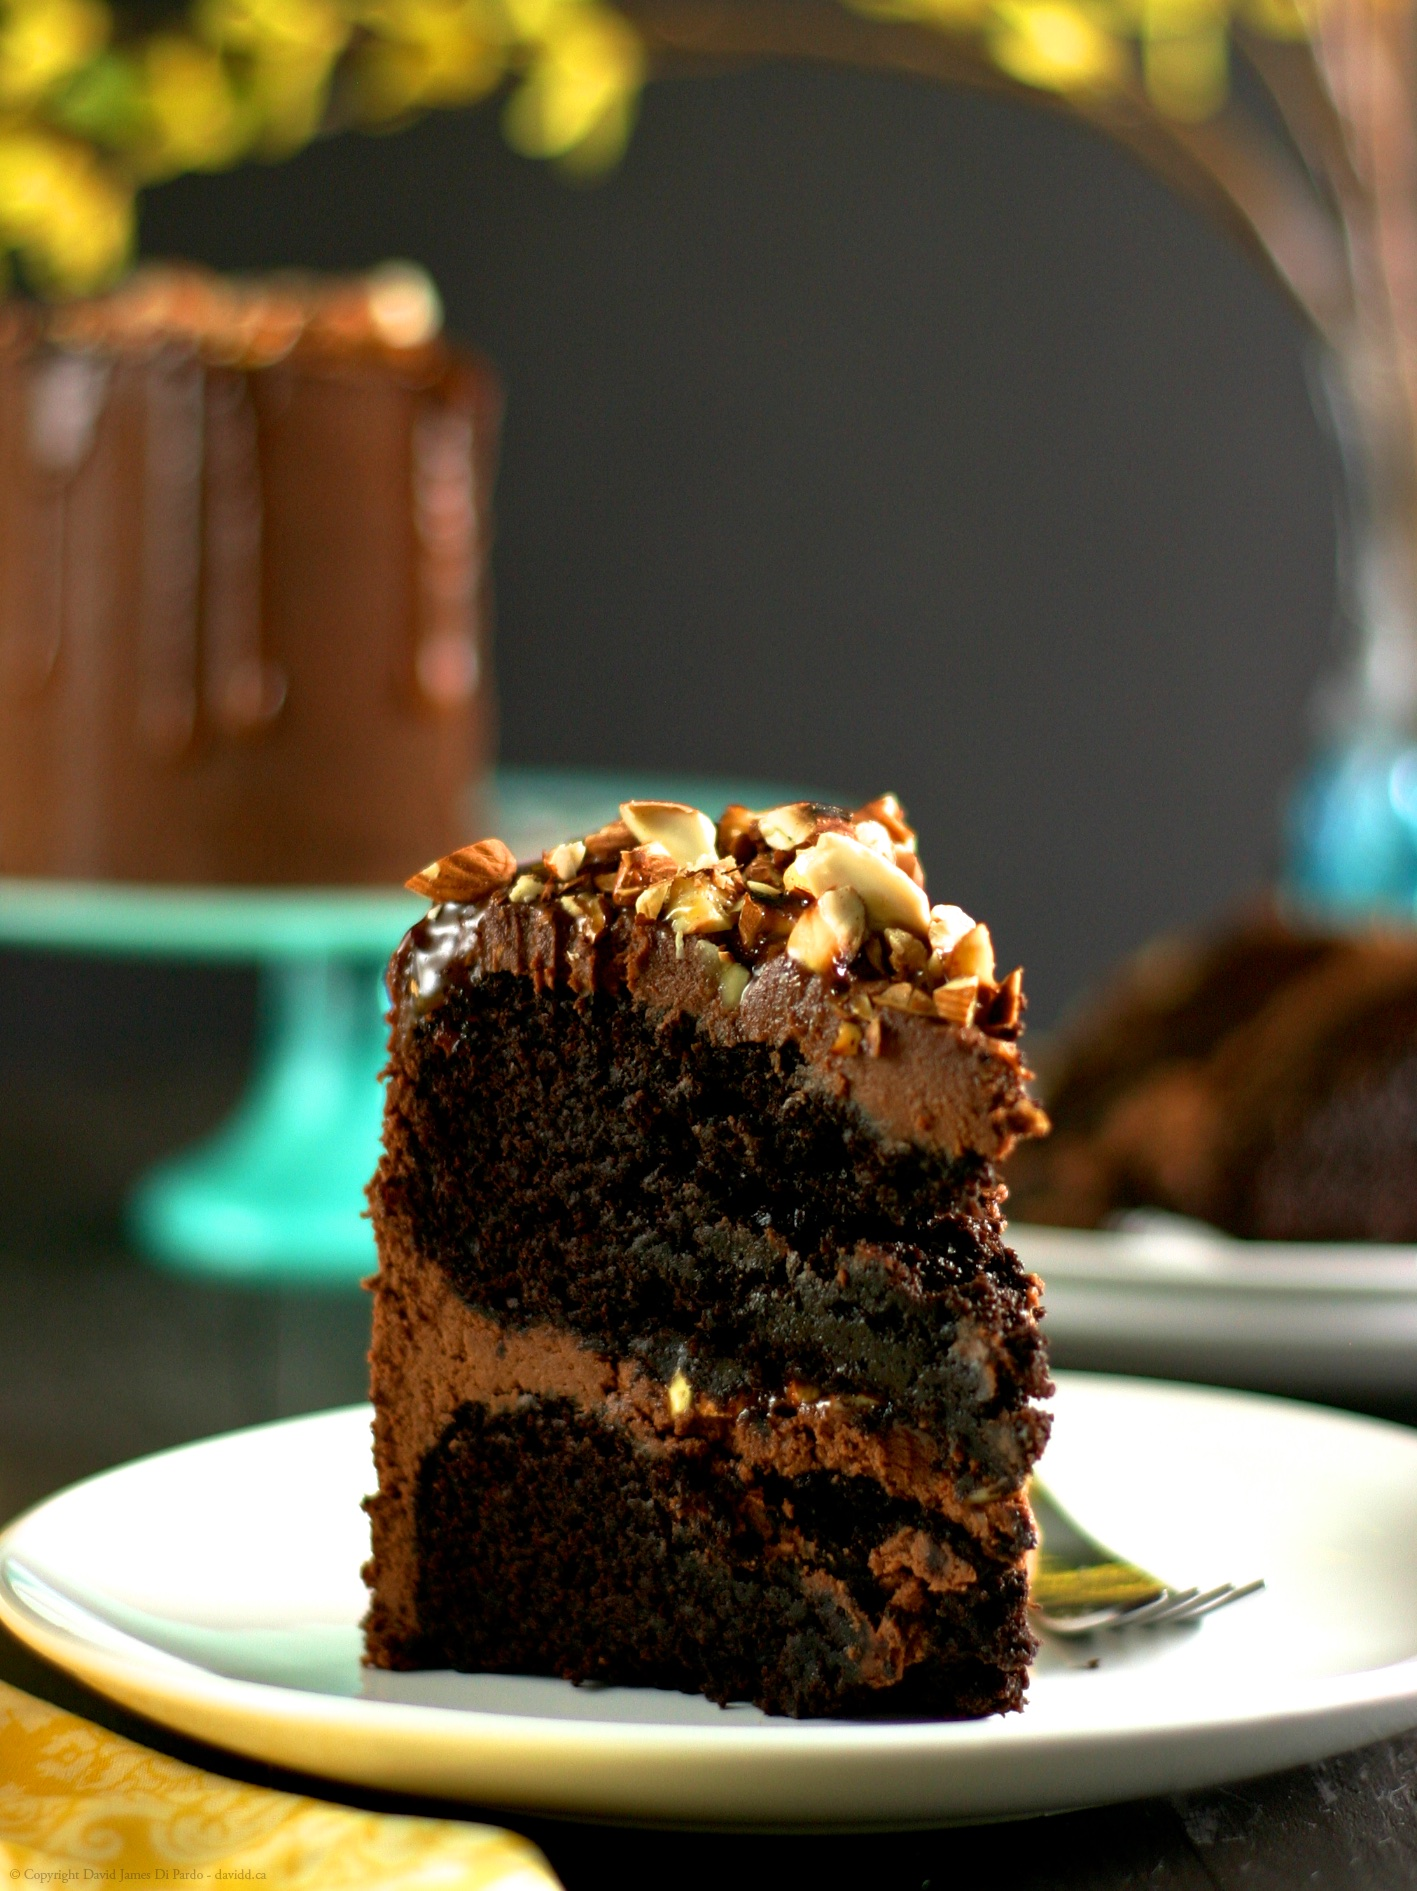 Vegan Gluten-Free Salted Almond Chocolate Cake